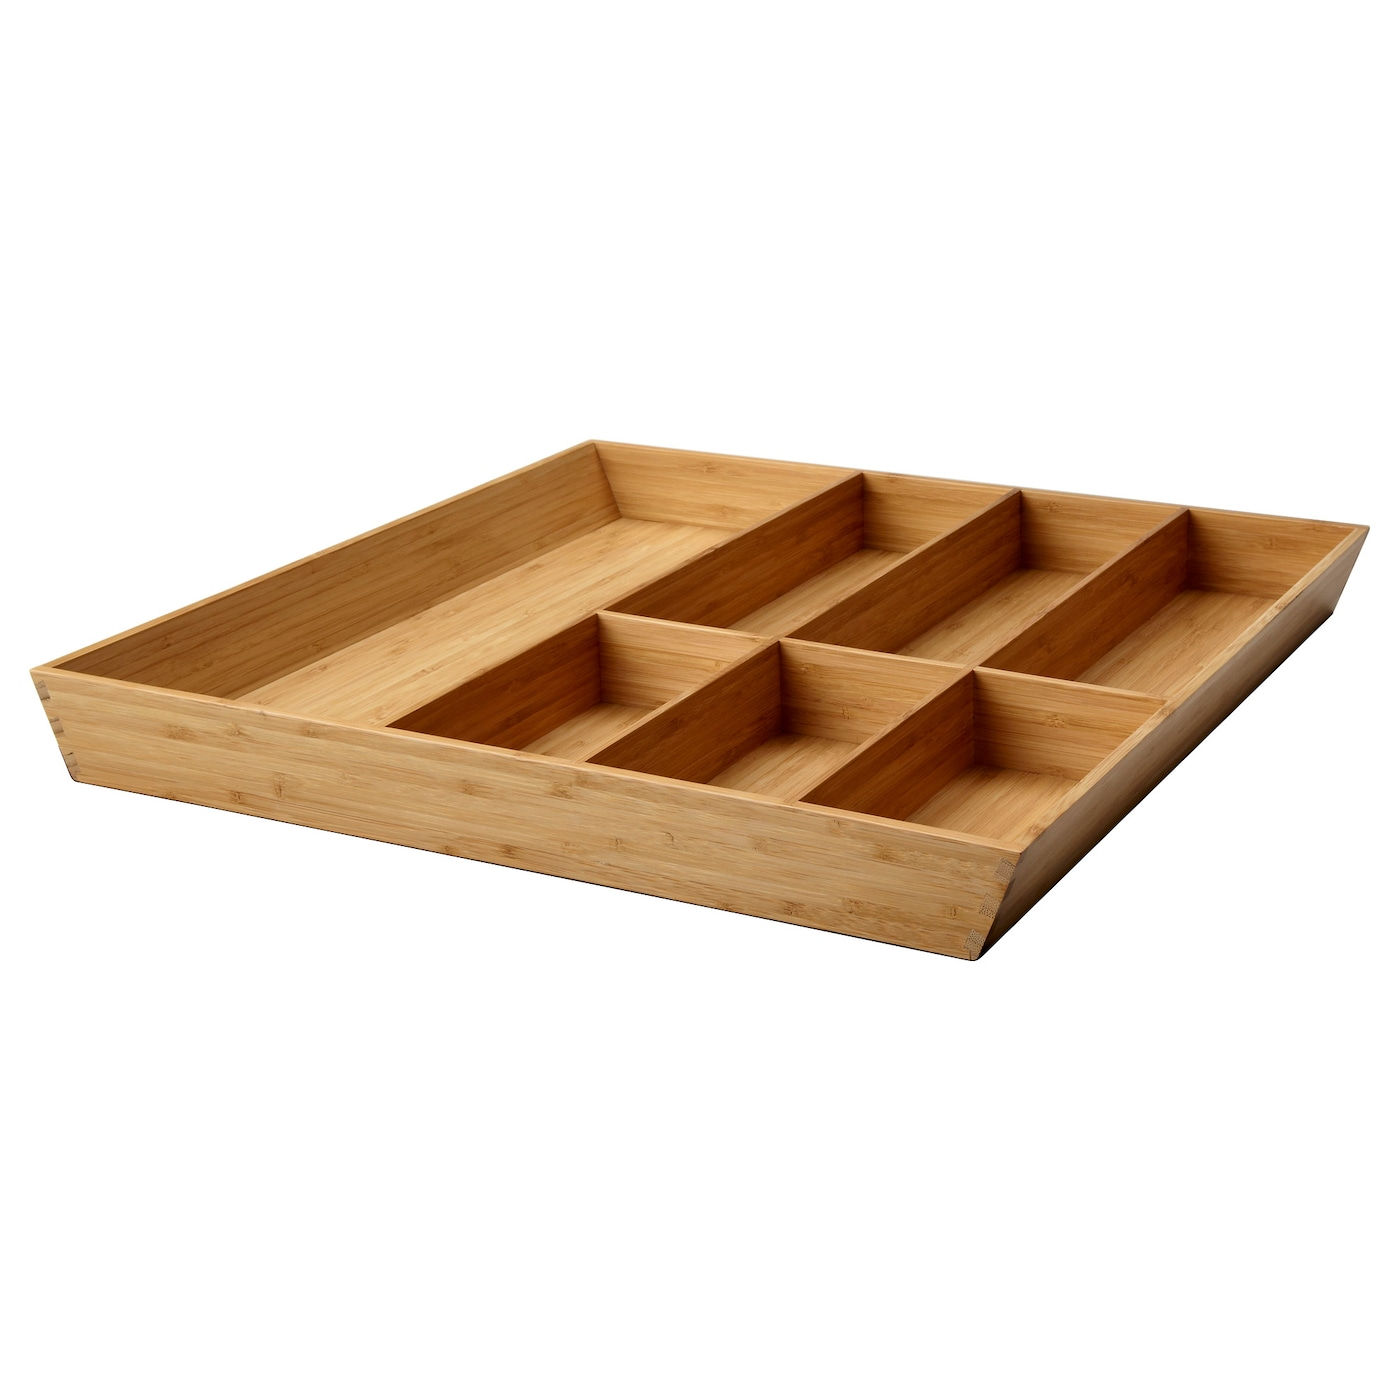 IKEA VARIERA cutlery tray Solid wood is a hardwearing natural material.